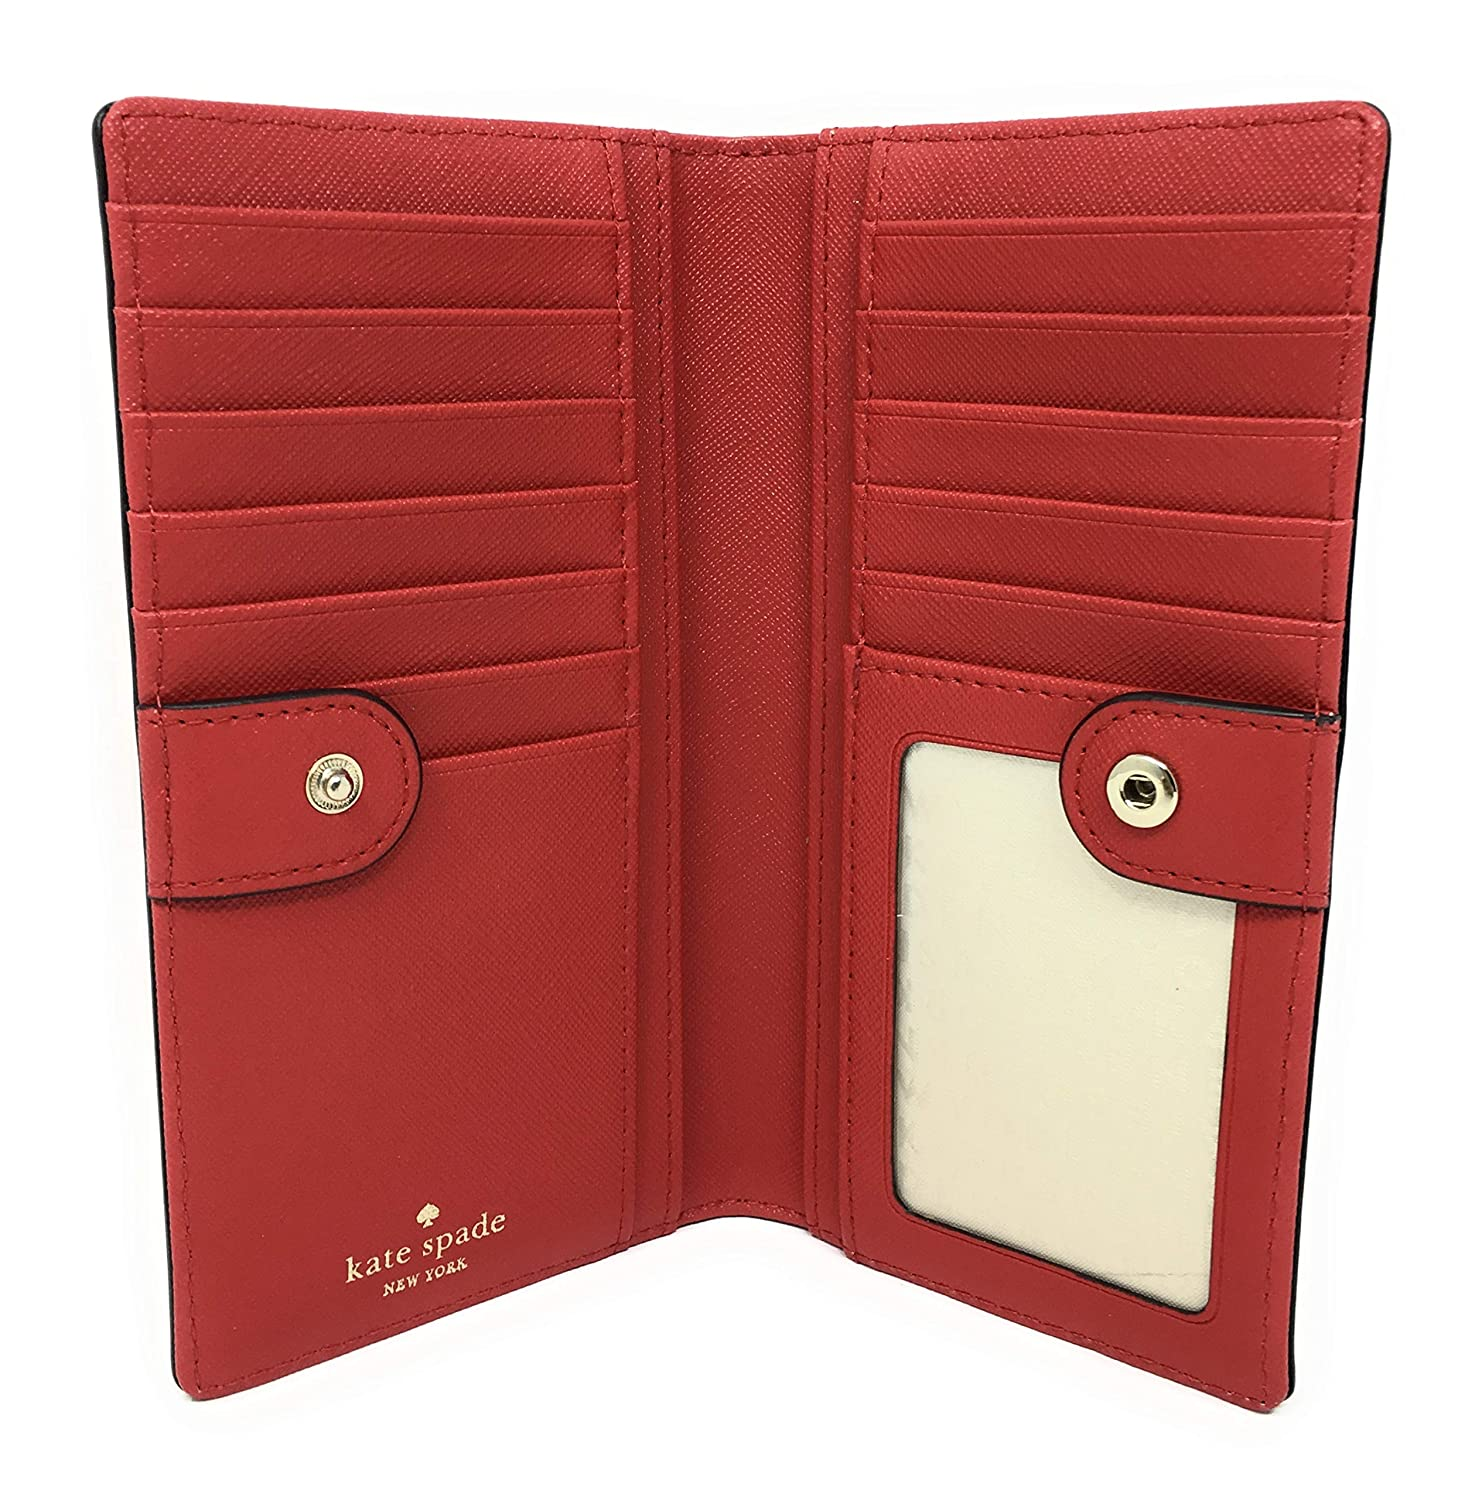 9a4de3110c6c Kate Spade New York Laurel Way Stacy Leather Wallet (Hot Chili Red):  Amazon.ca: Clothing & Accessories